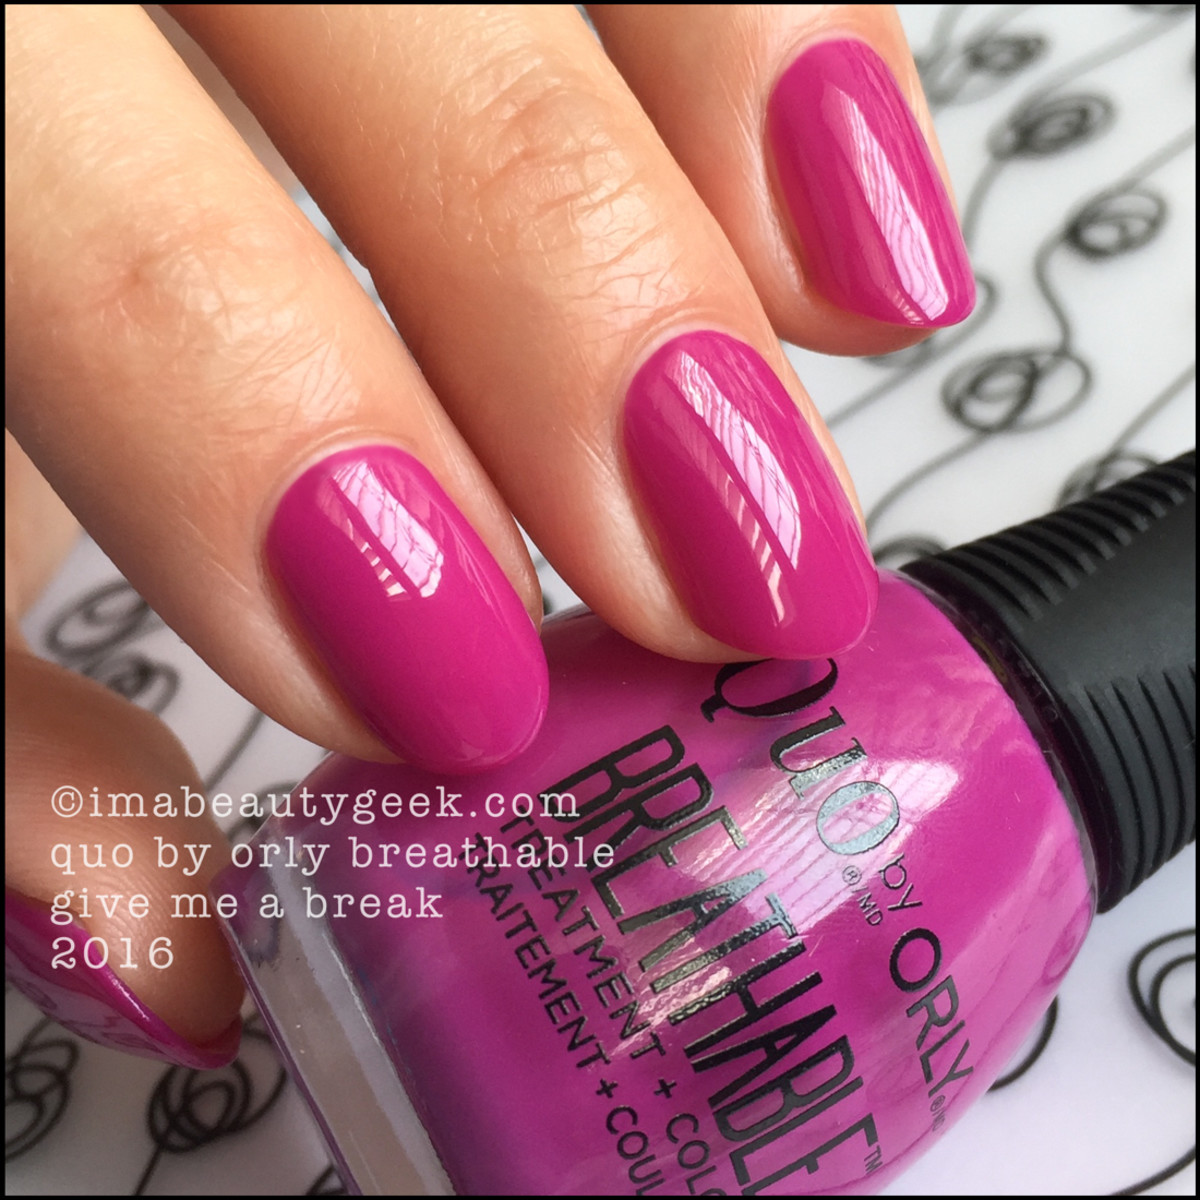 Orly Breathable Nail Polish_Quo by Orly Breathable Give Me a Break